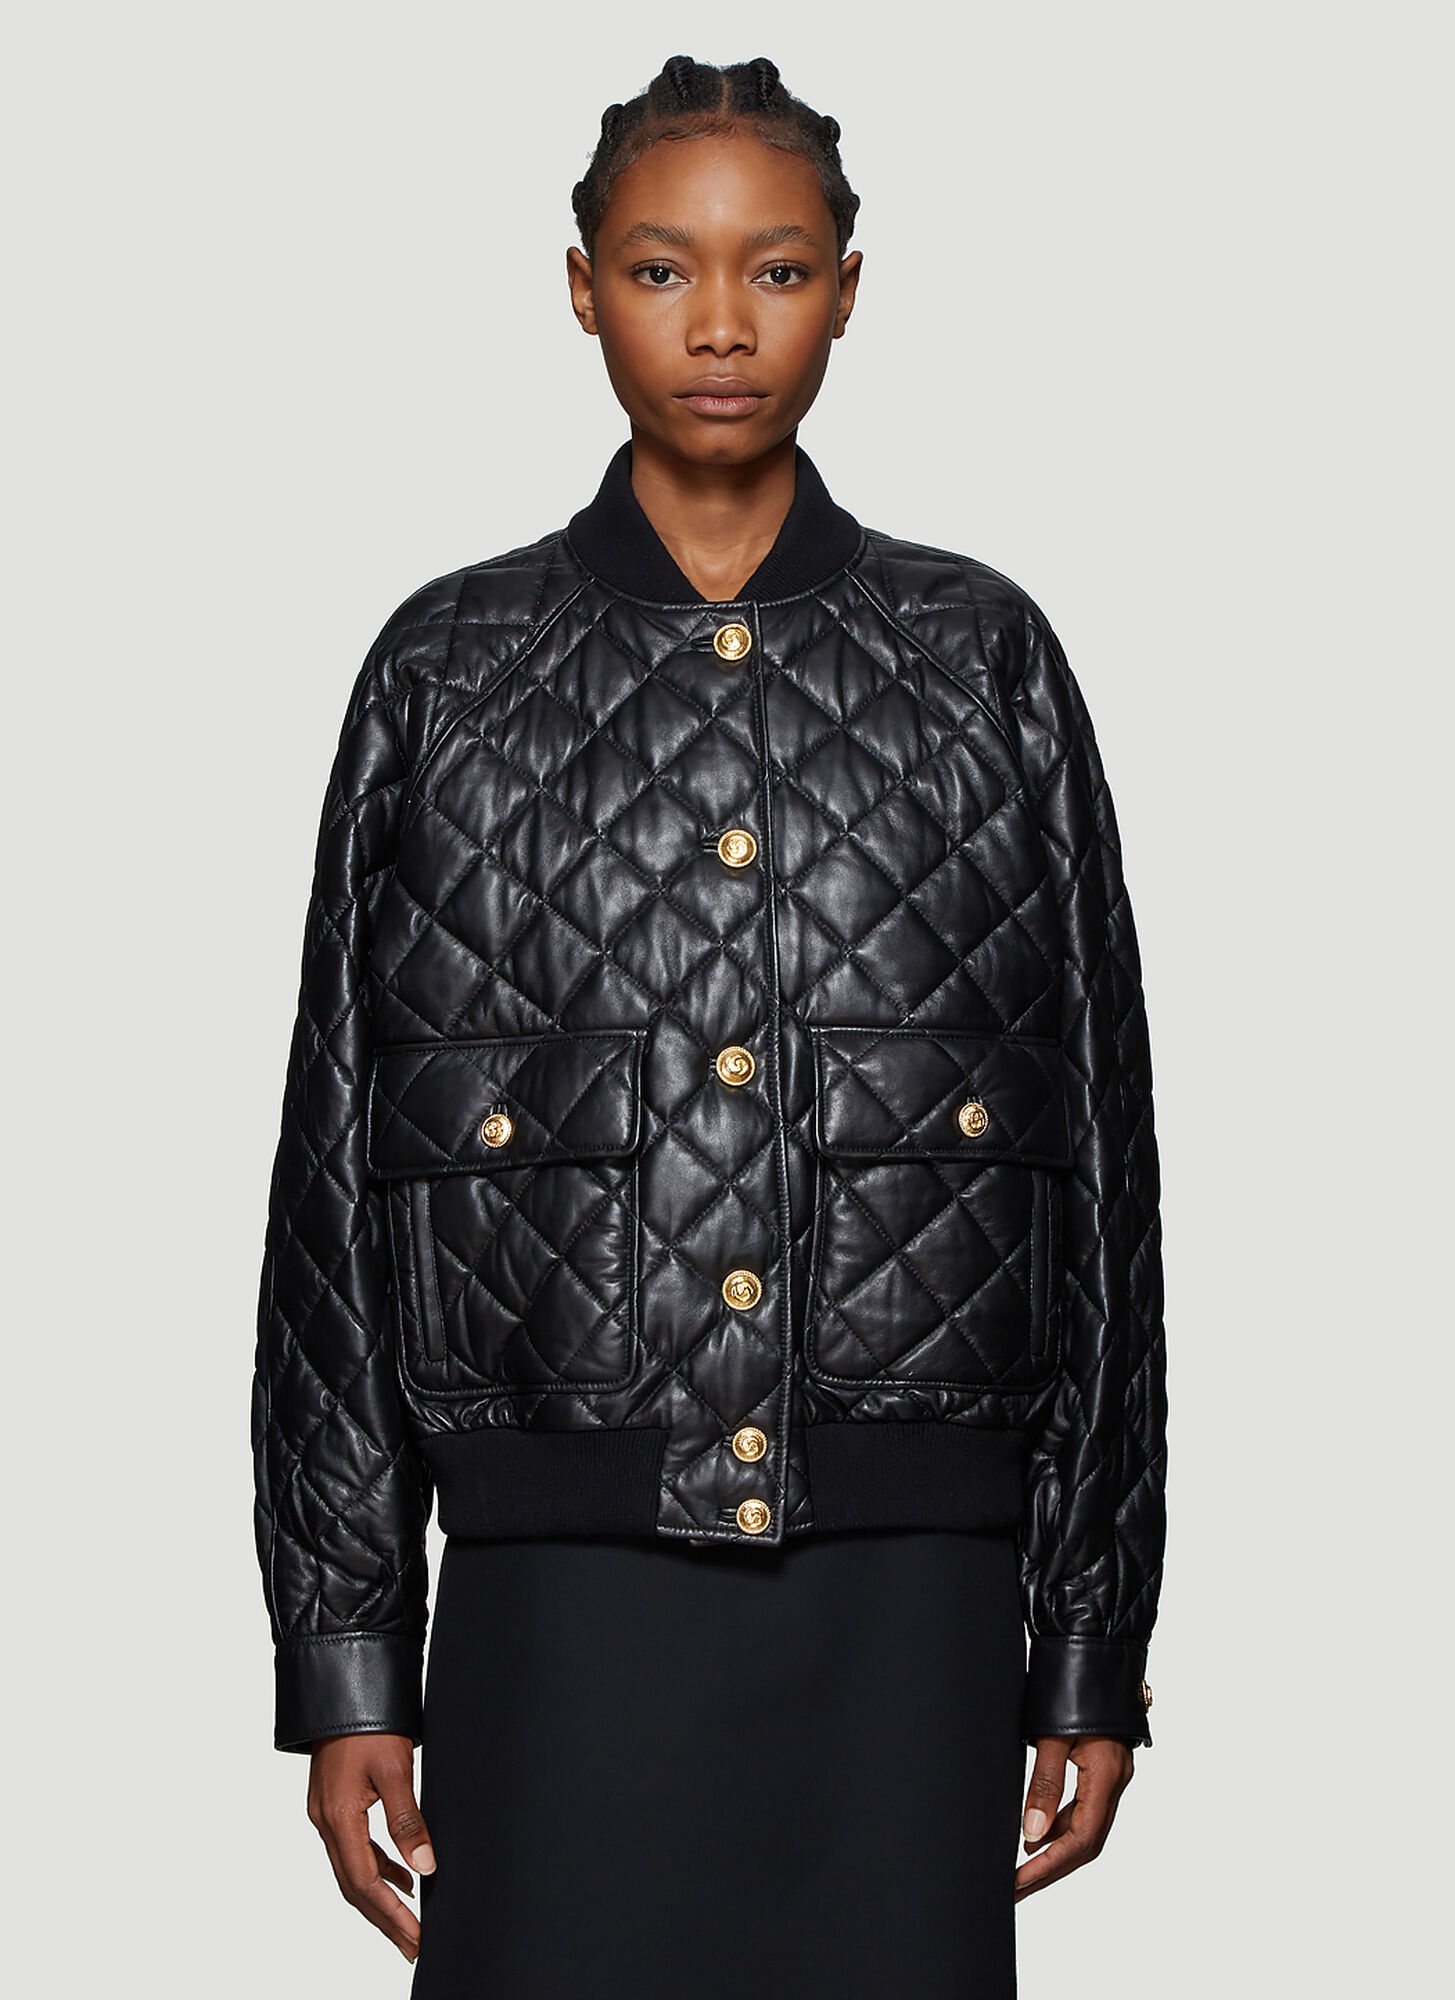 Gucci Quilted Leather Bomber Jacket in Black